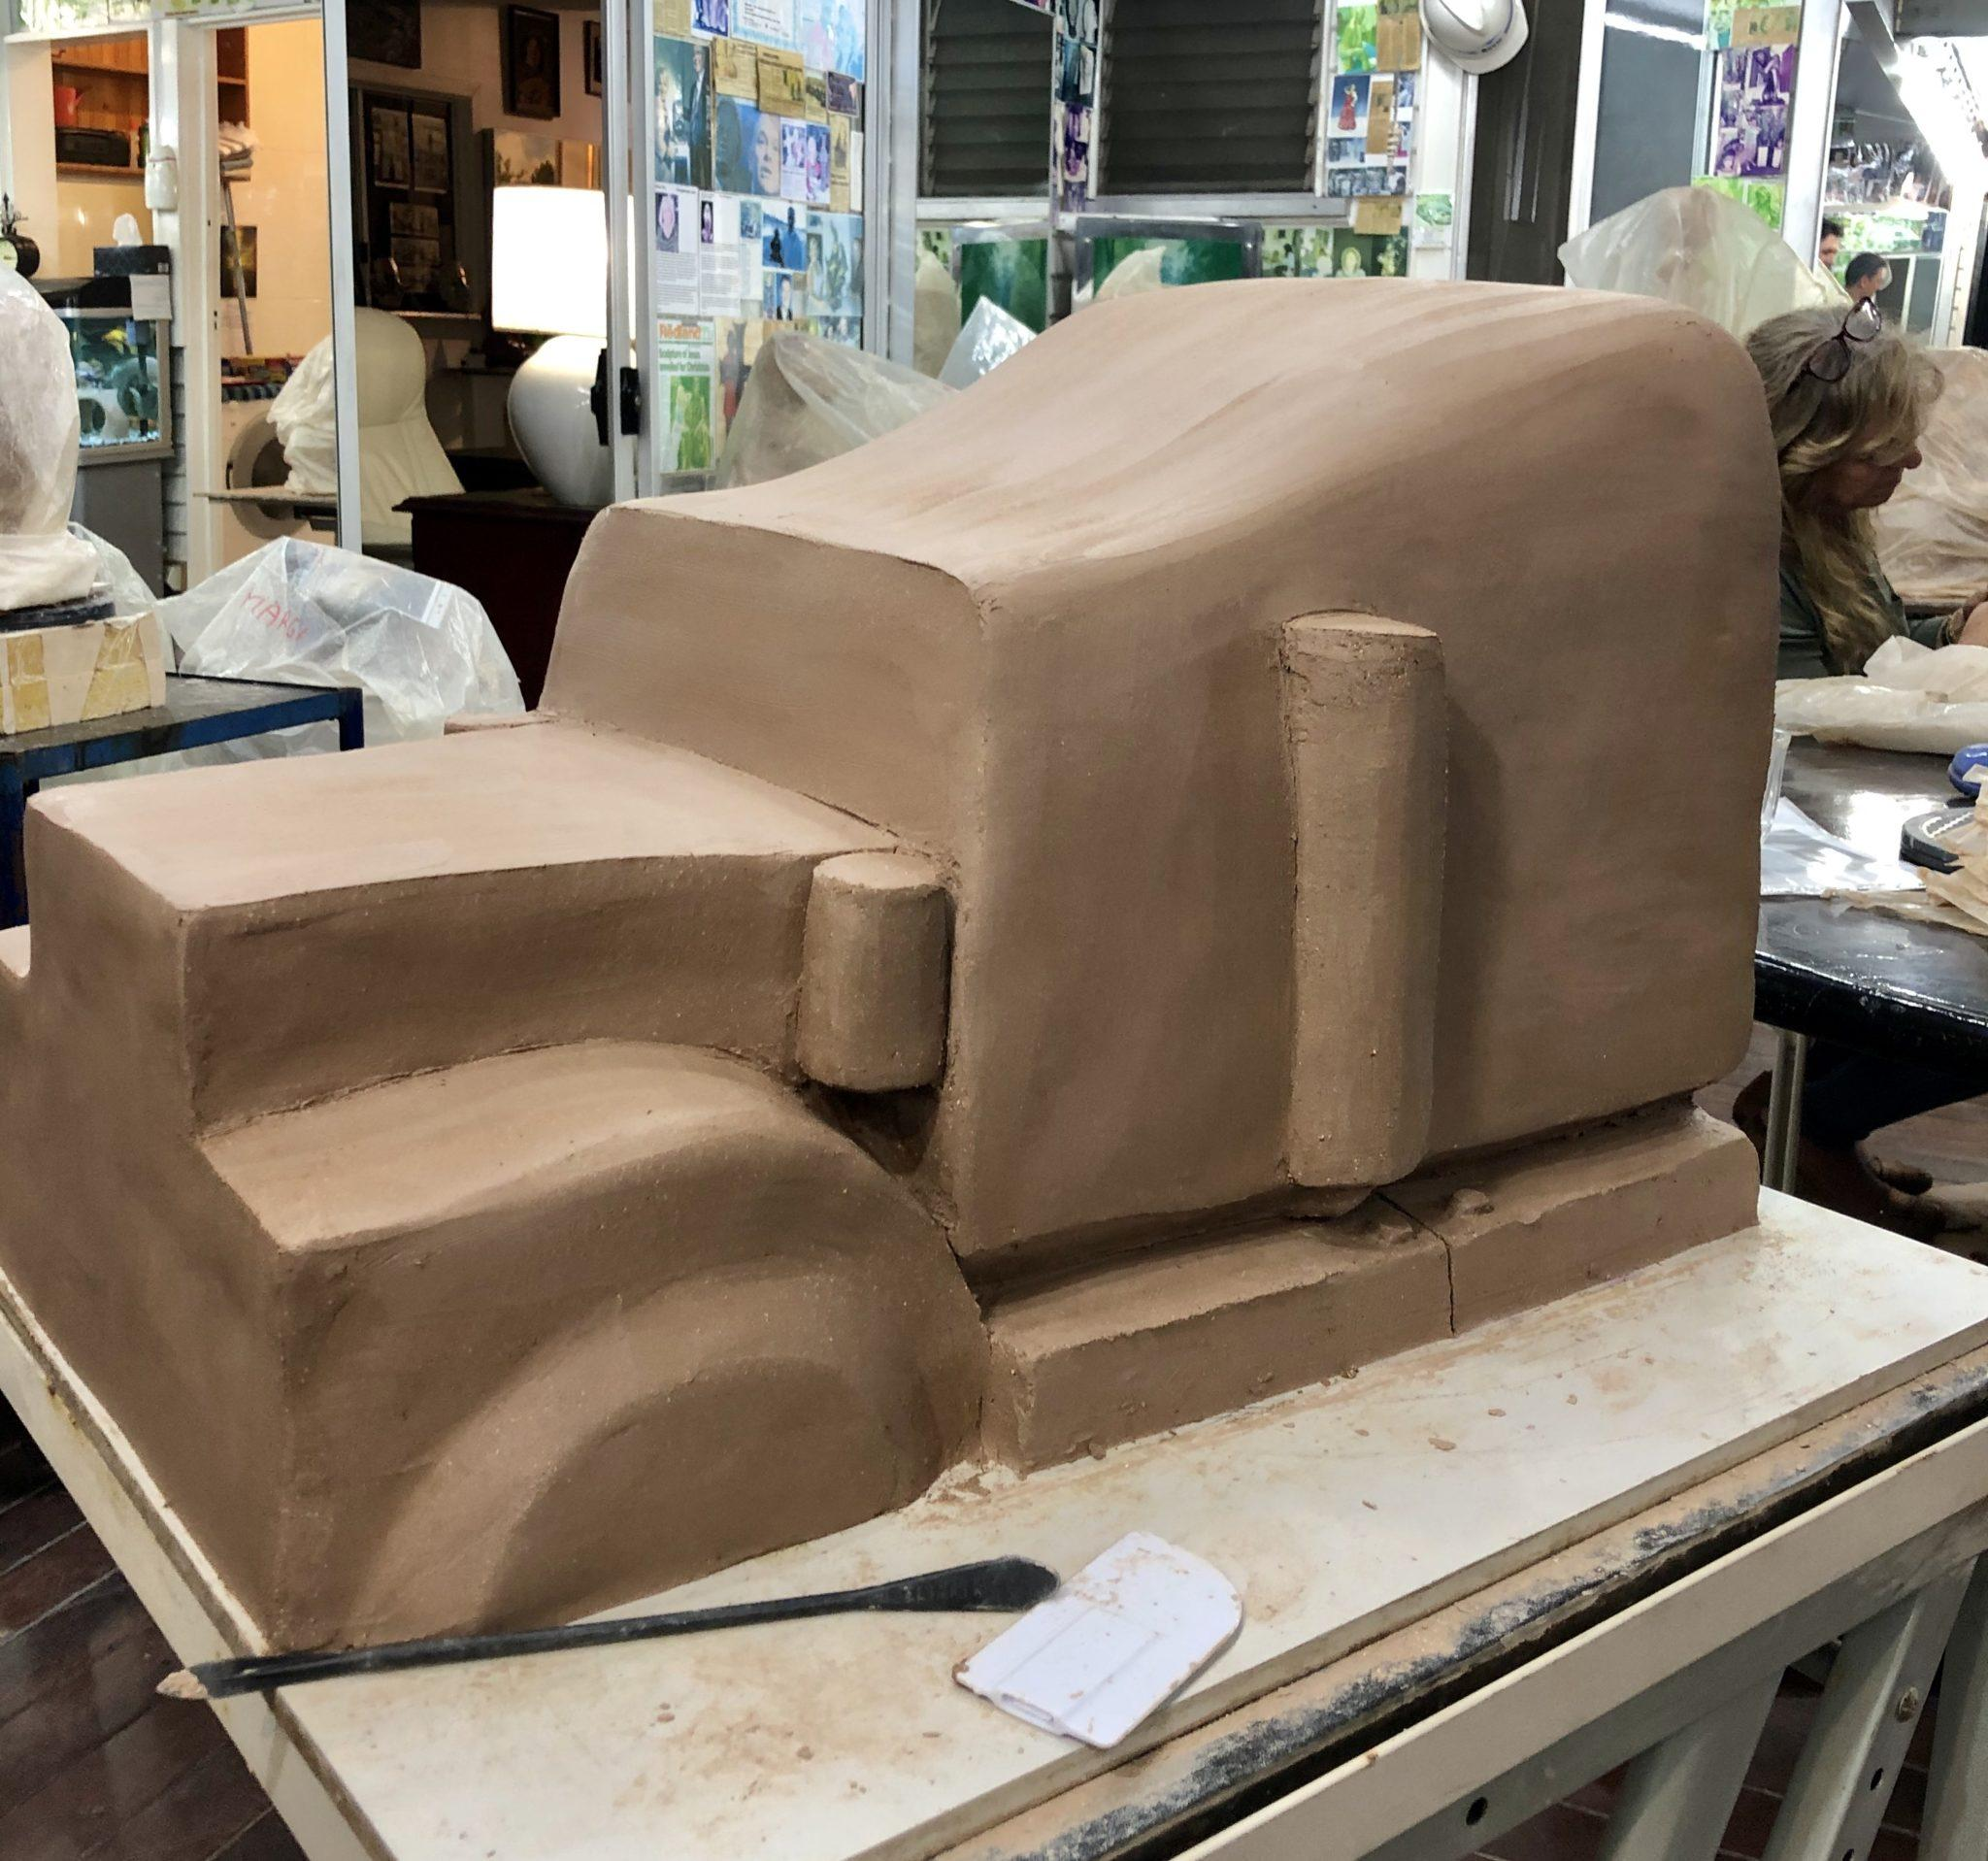 Lee's clay sculpture is progressing during the art class